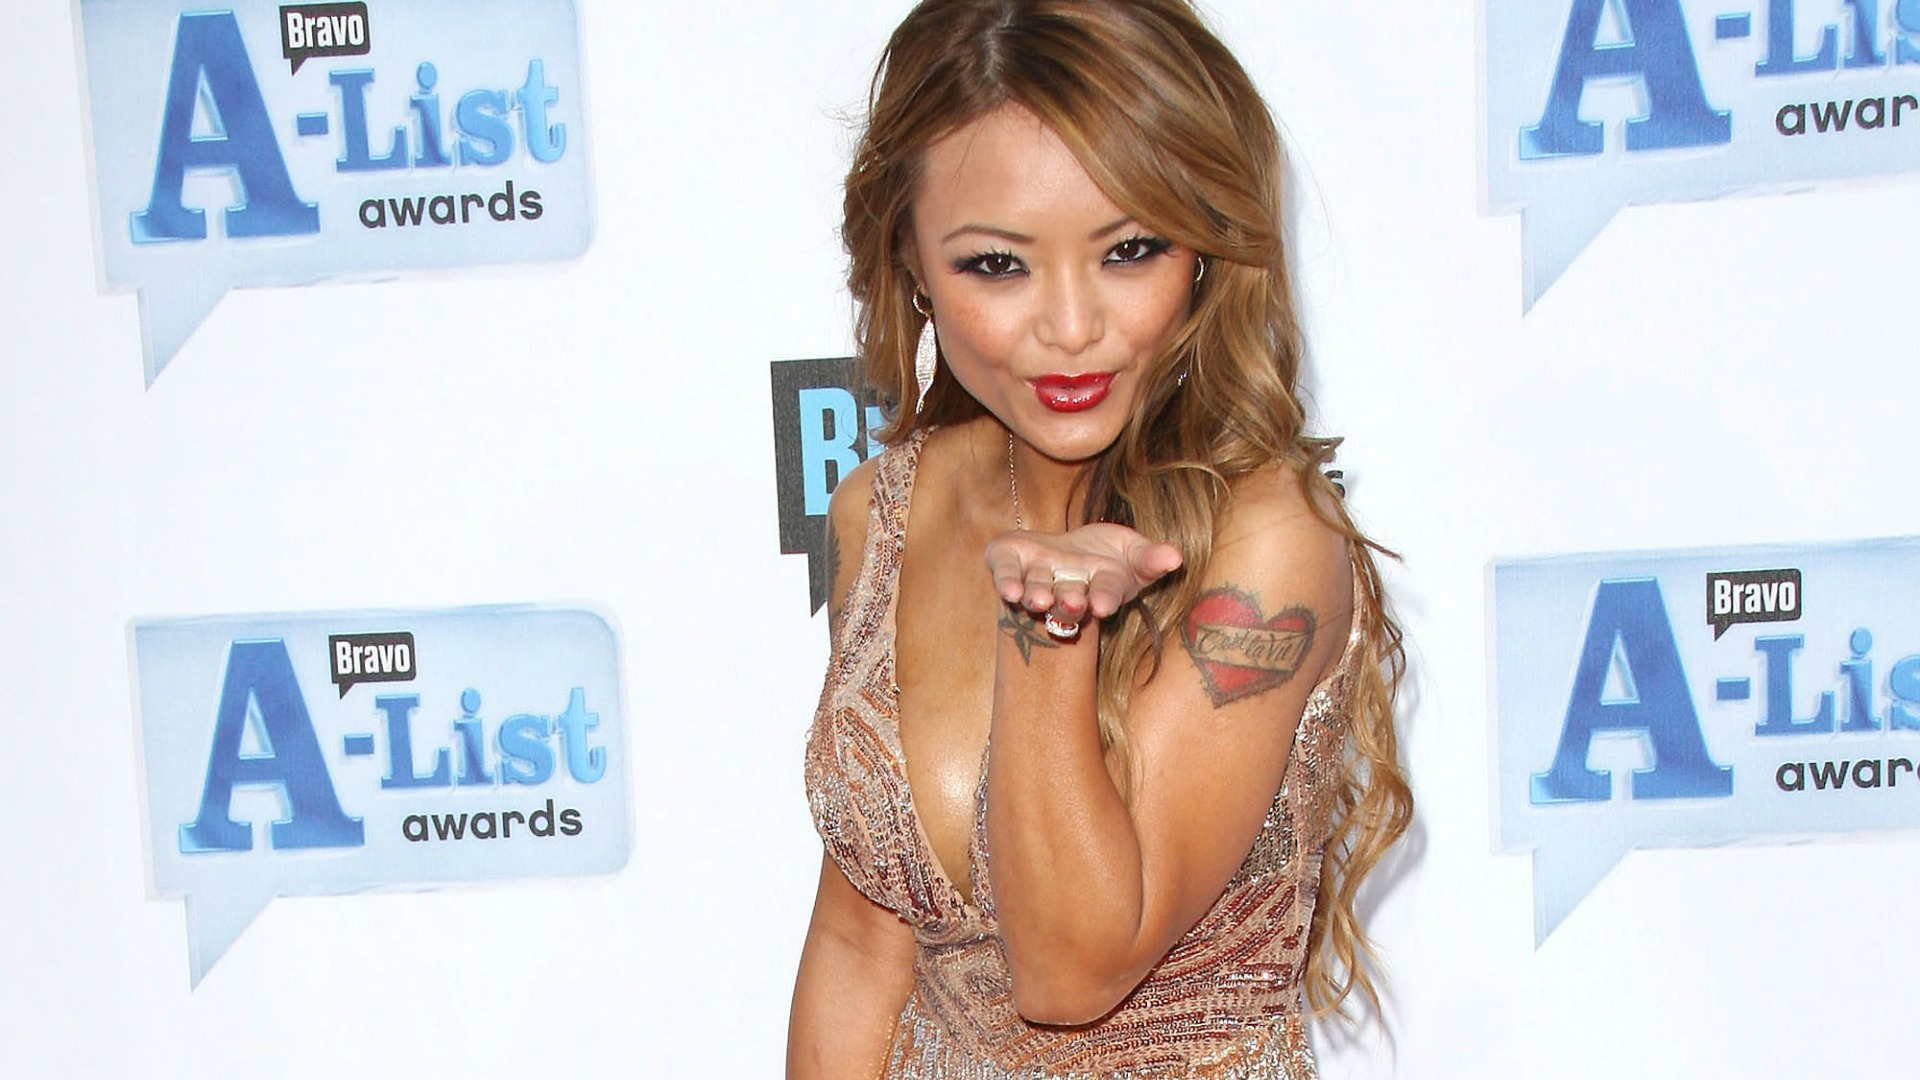 15 Most scandalous Tila Tequila moments